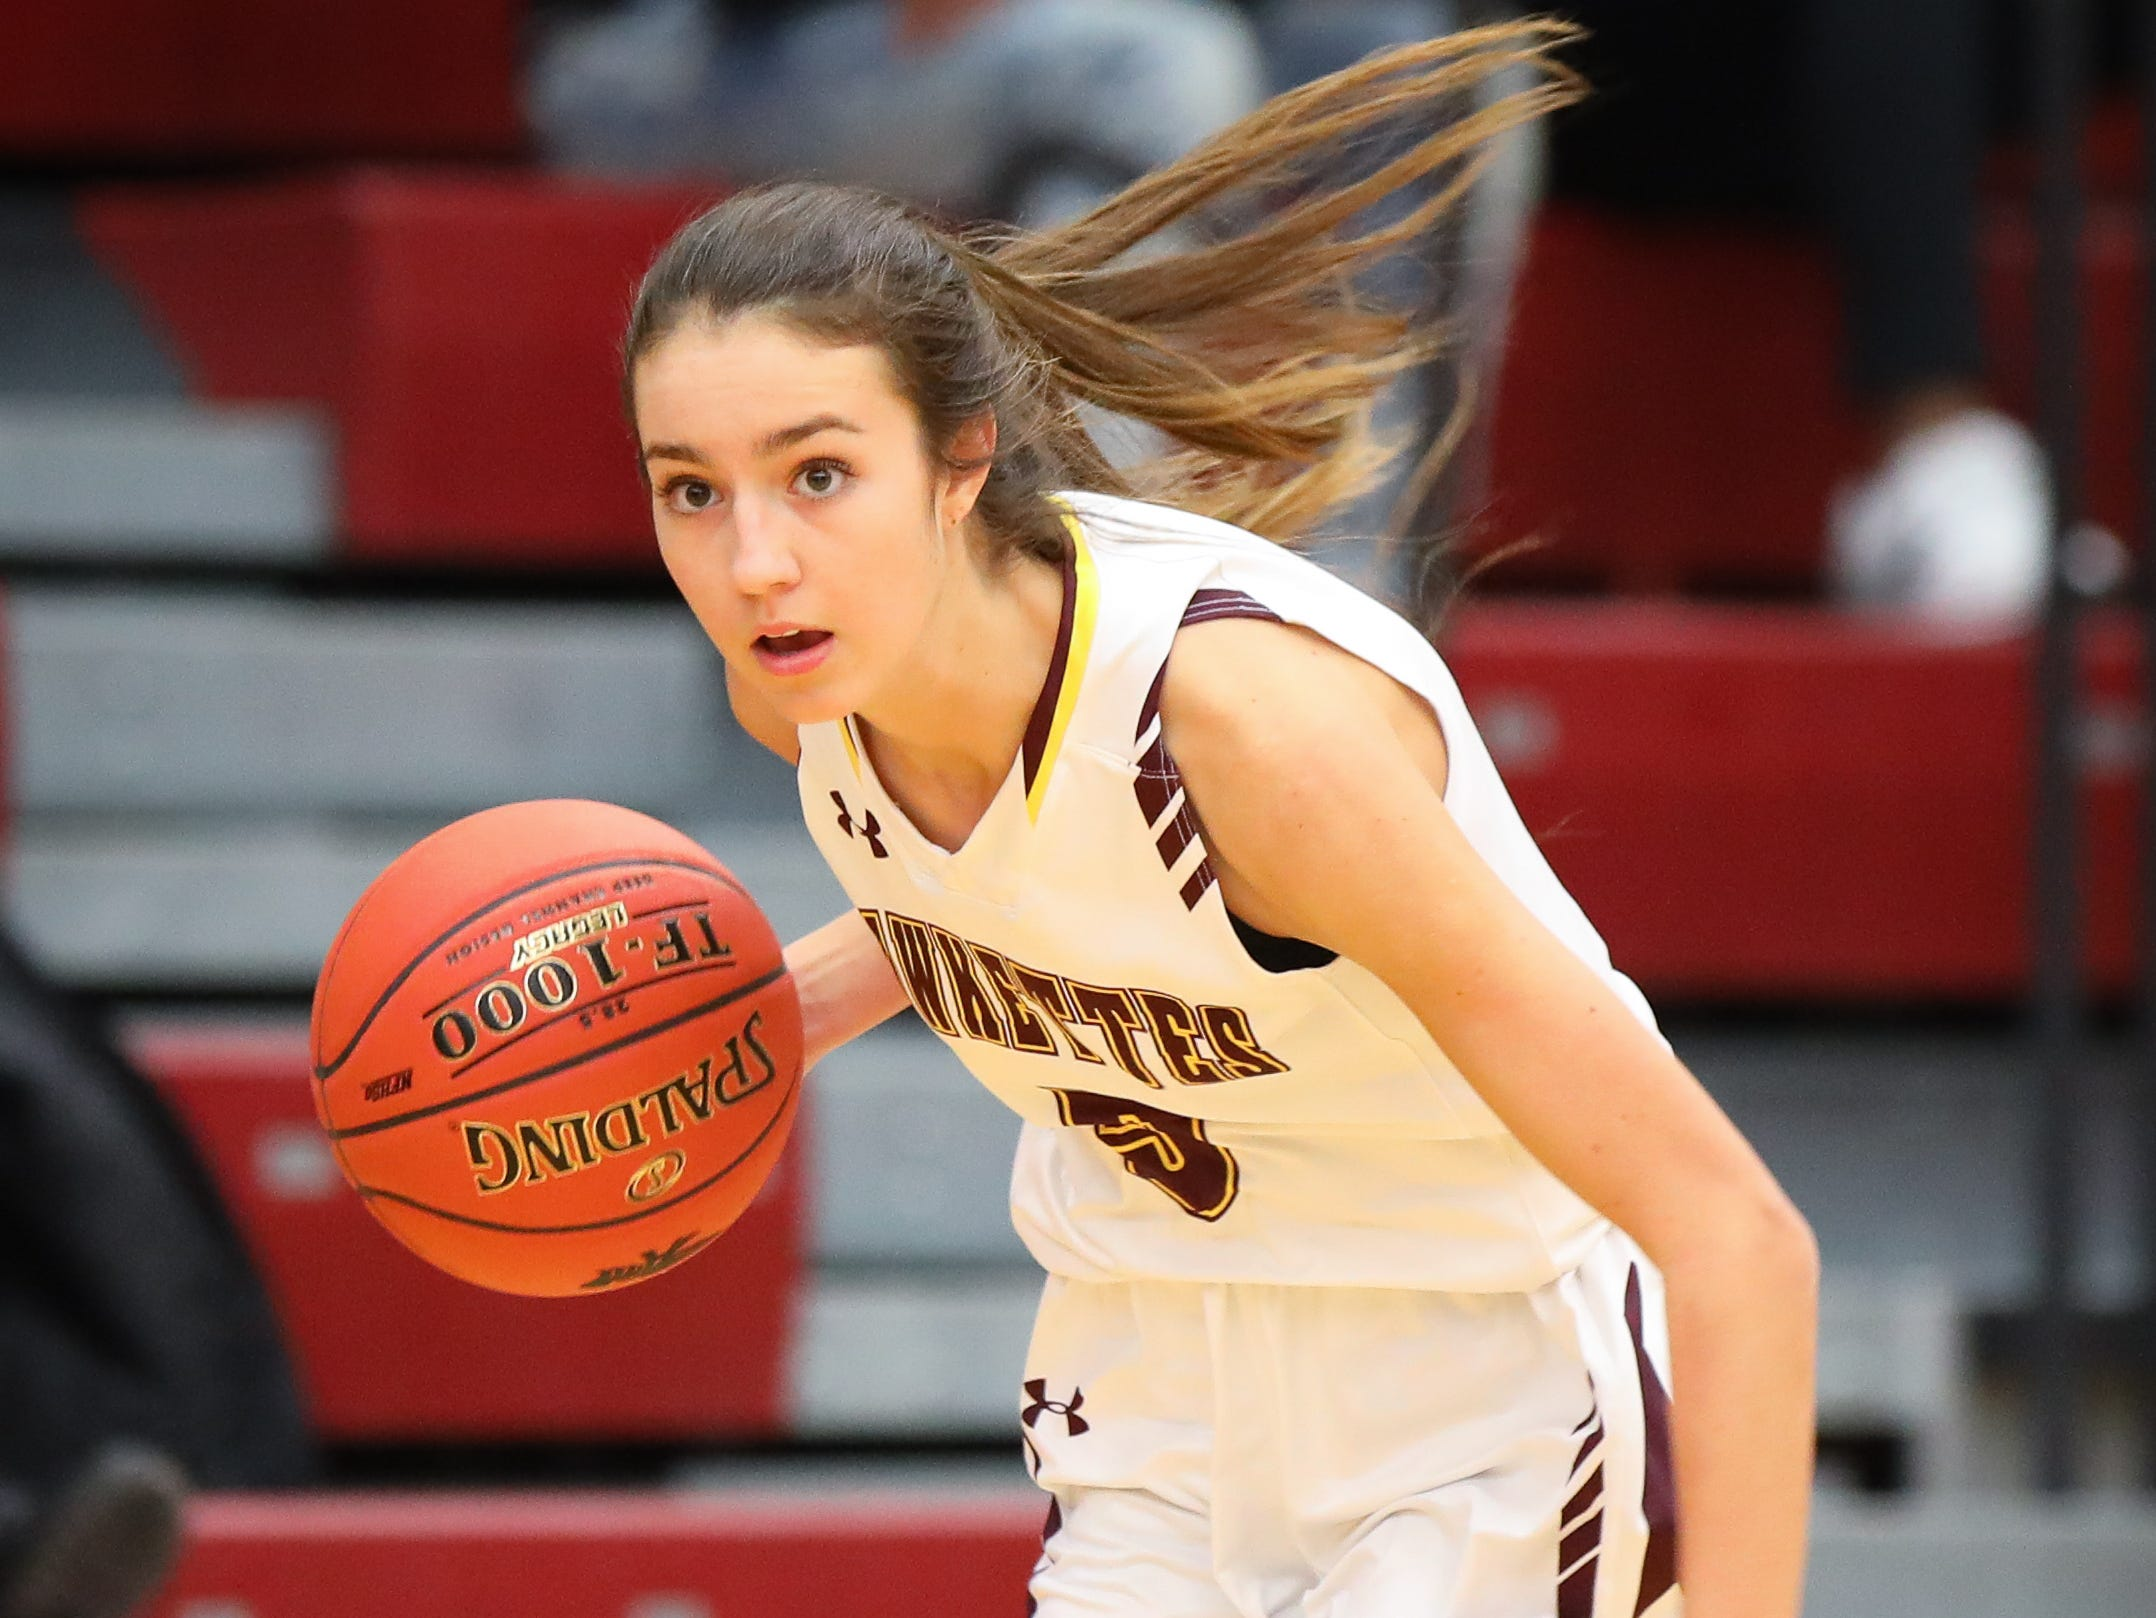 Ankeny junior Kayla Pitz brings the ball up the court during a girls high school basketball game between the Lincoln Railsplitters and the Ankeny Hawks at Ankeny High School on Dec. 4, 2018 in Ankeny, Iowa.